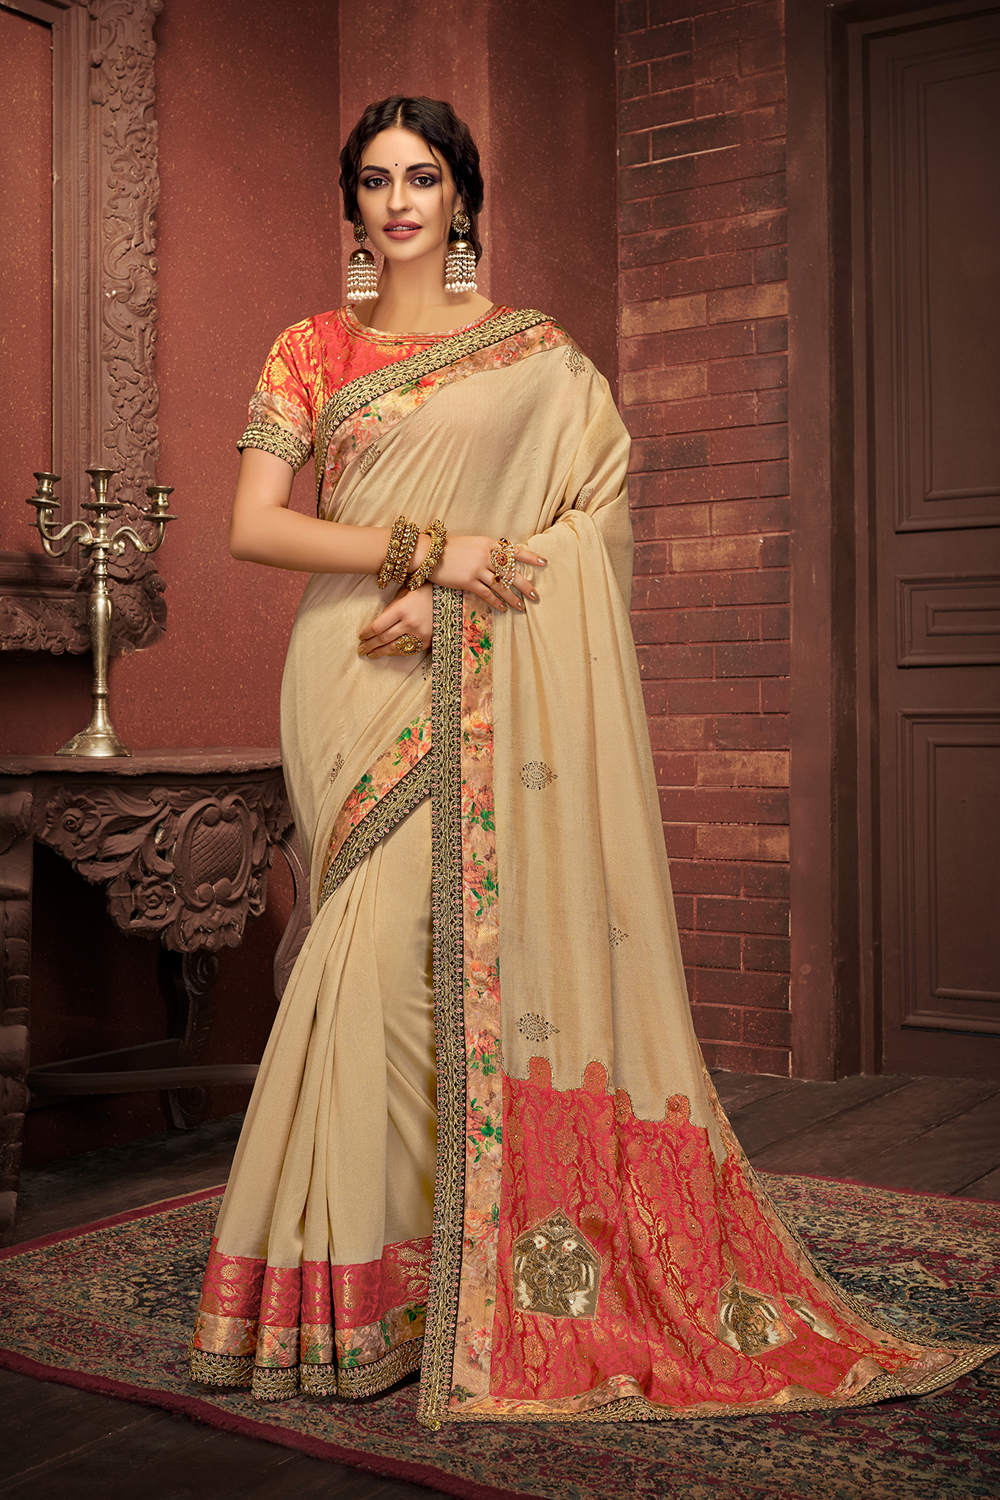 Rhytmic vibes saree enhanced with a right touch of red